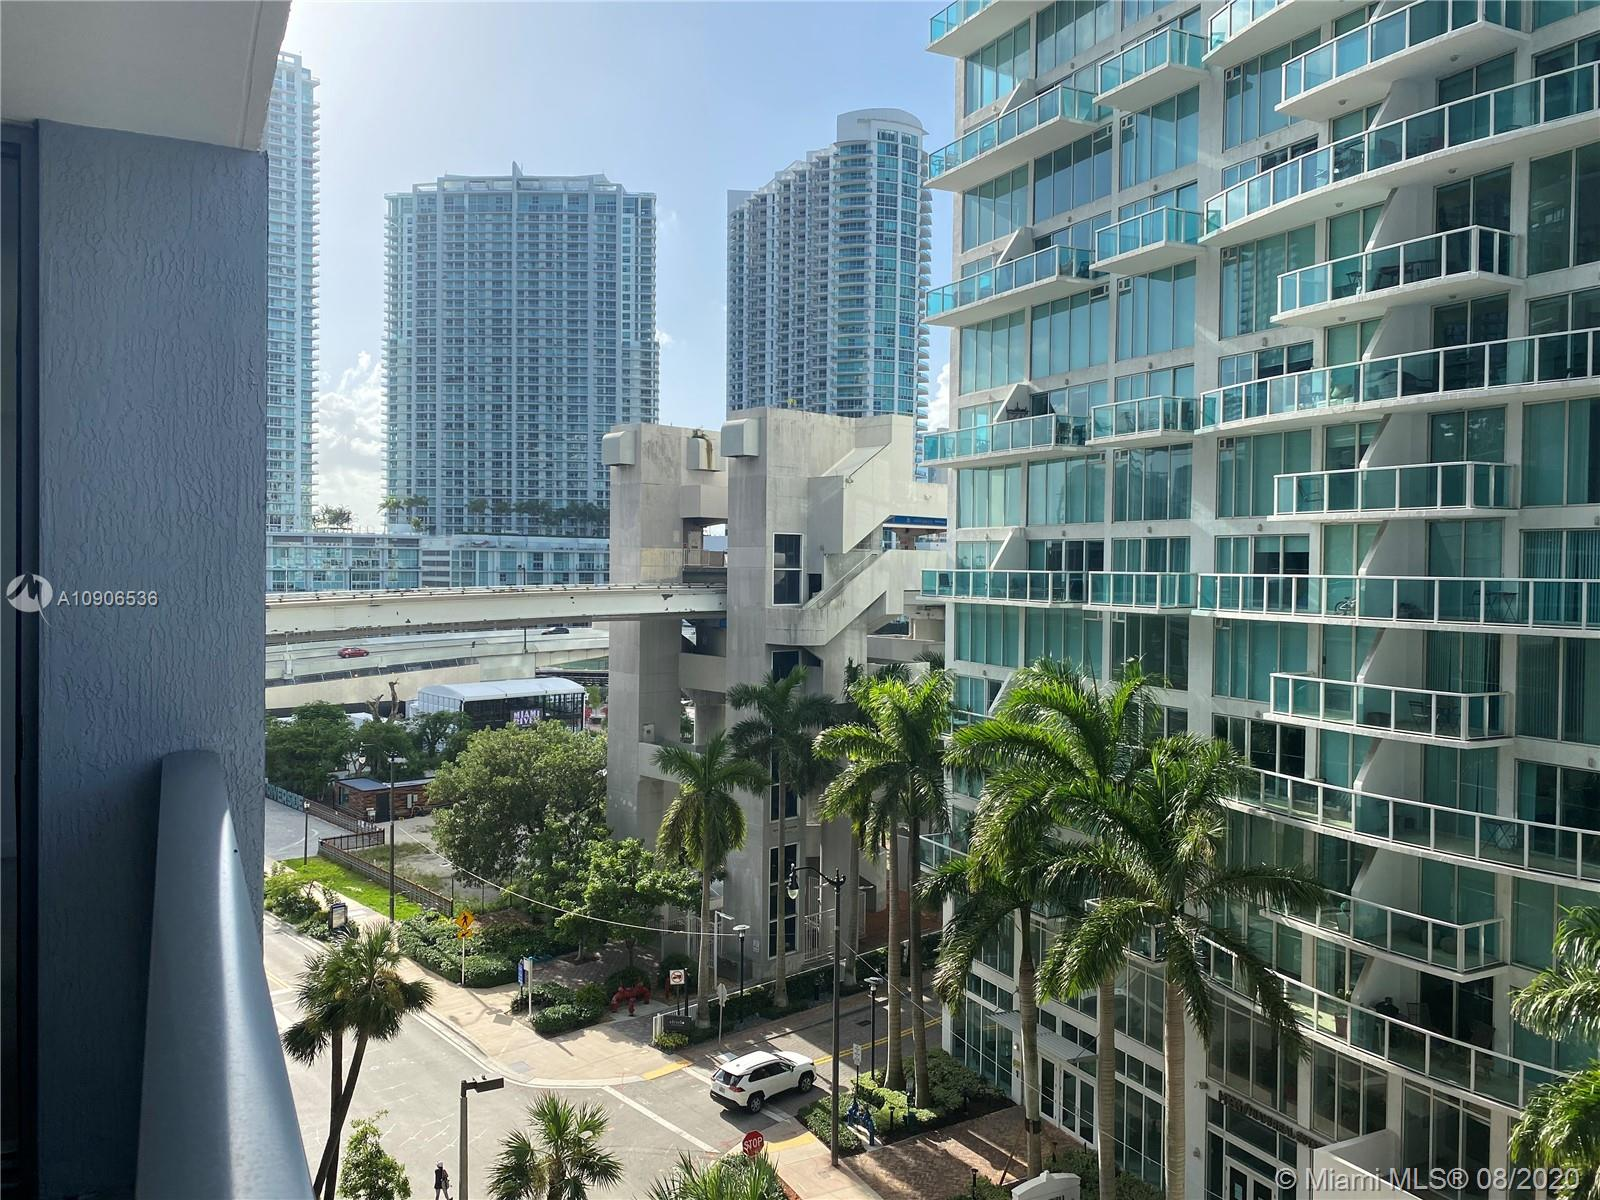 My Brickell #808 - 31 SE 6TH STREET #808, Miami, FL 33131